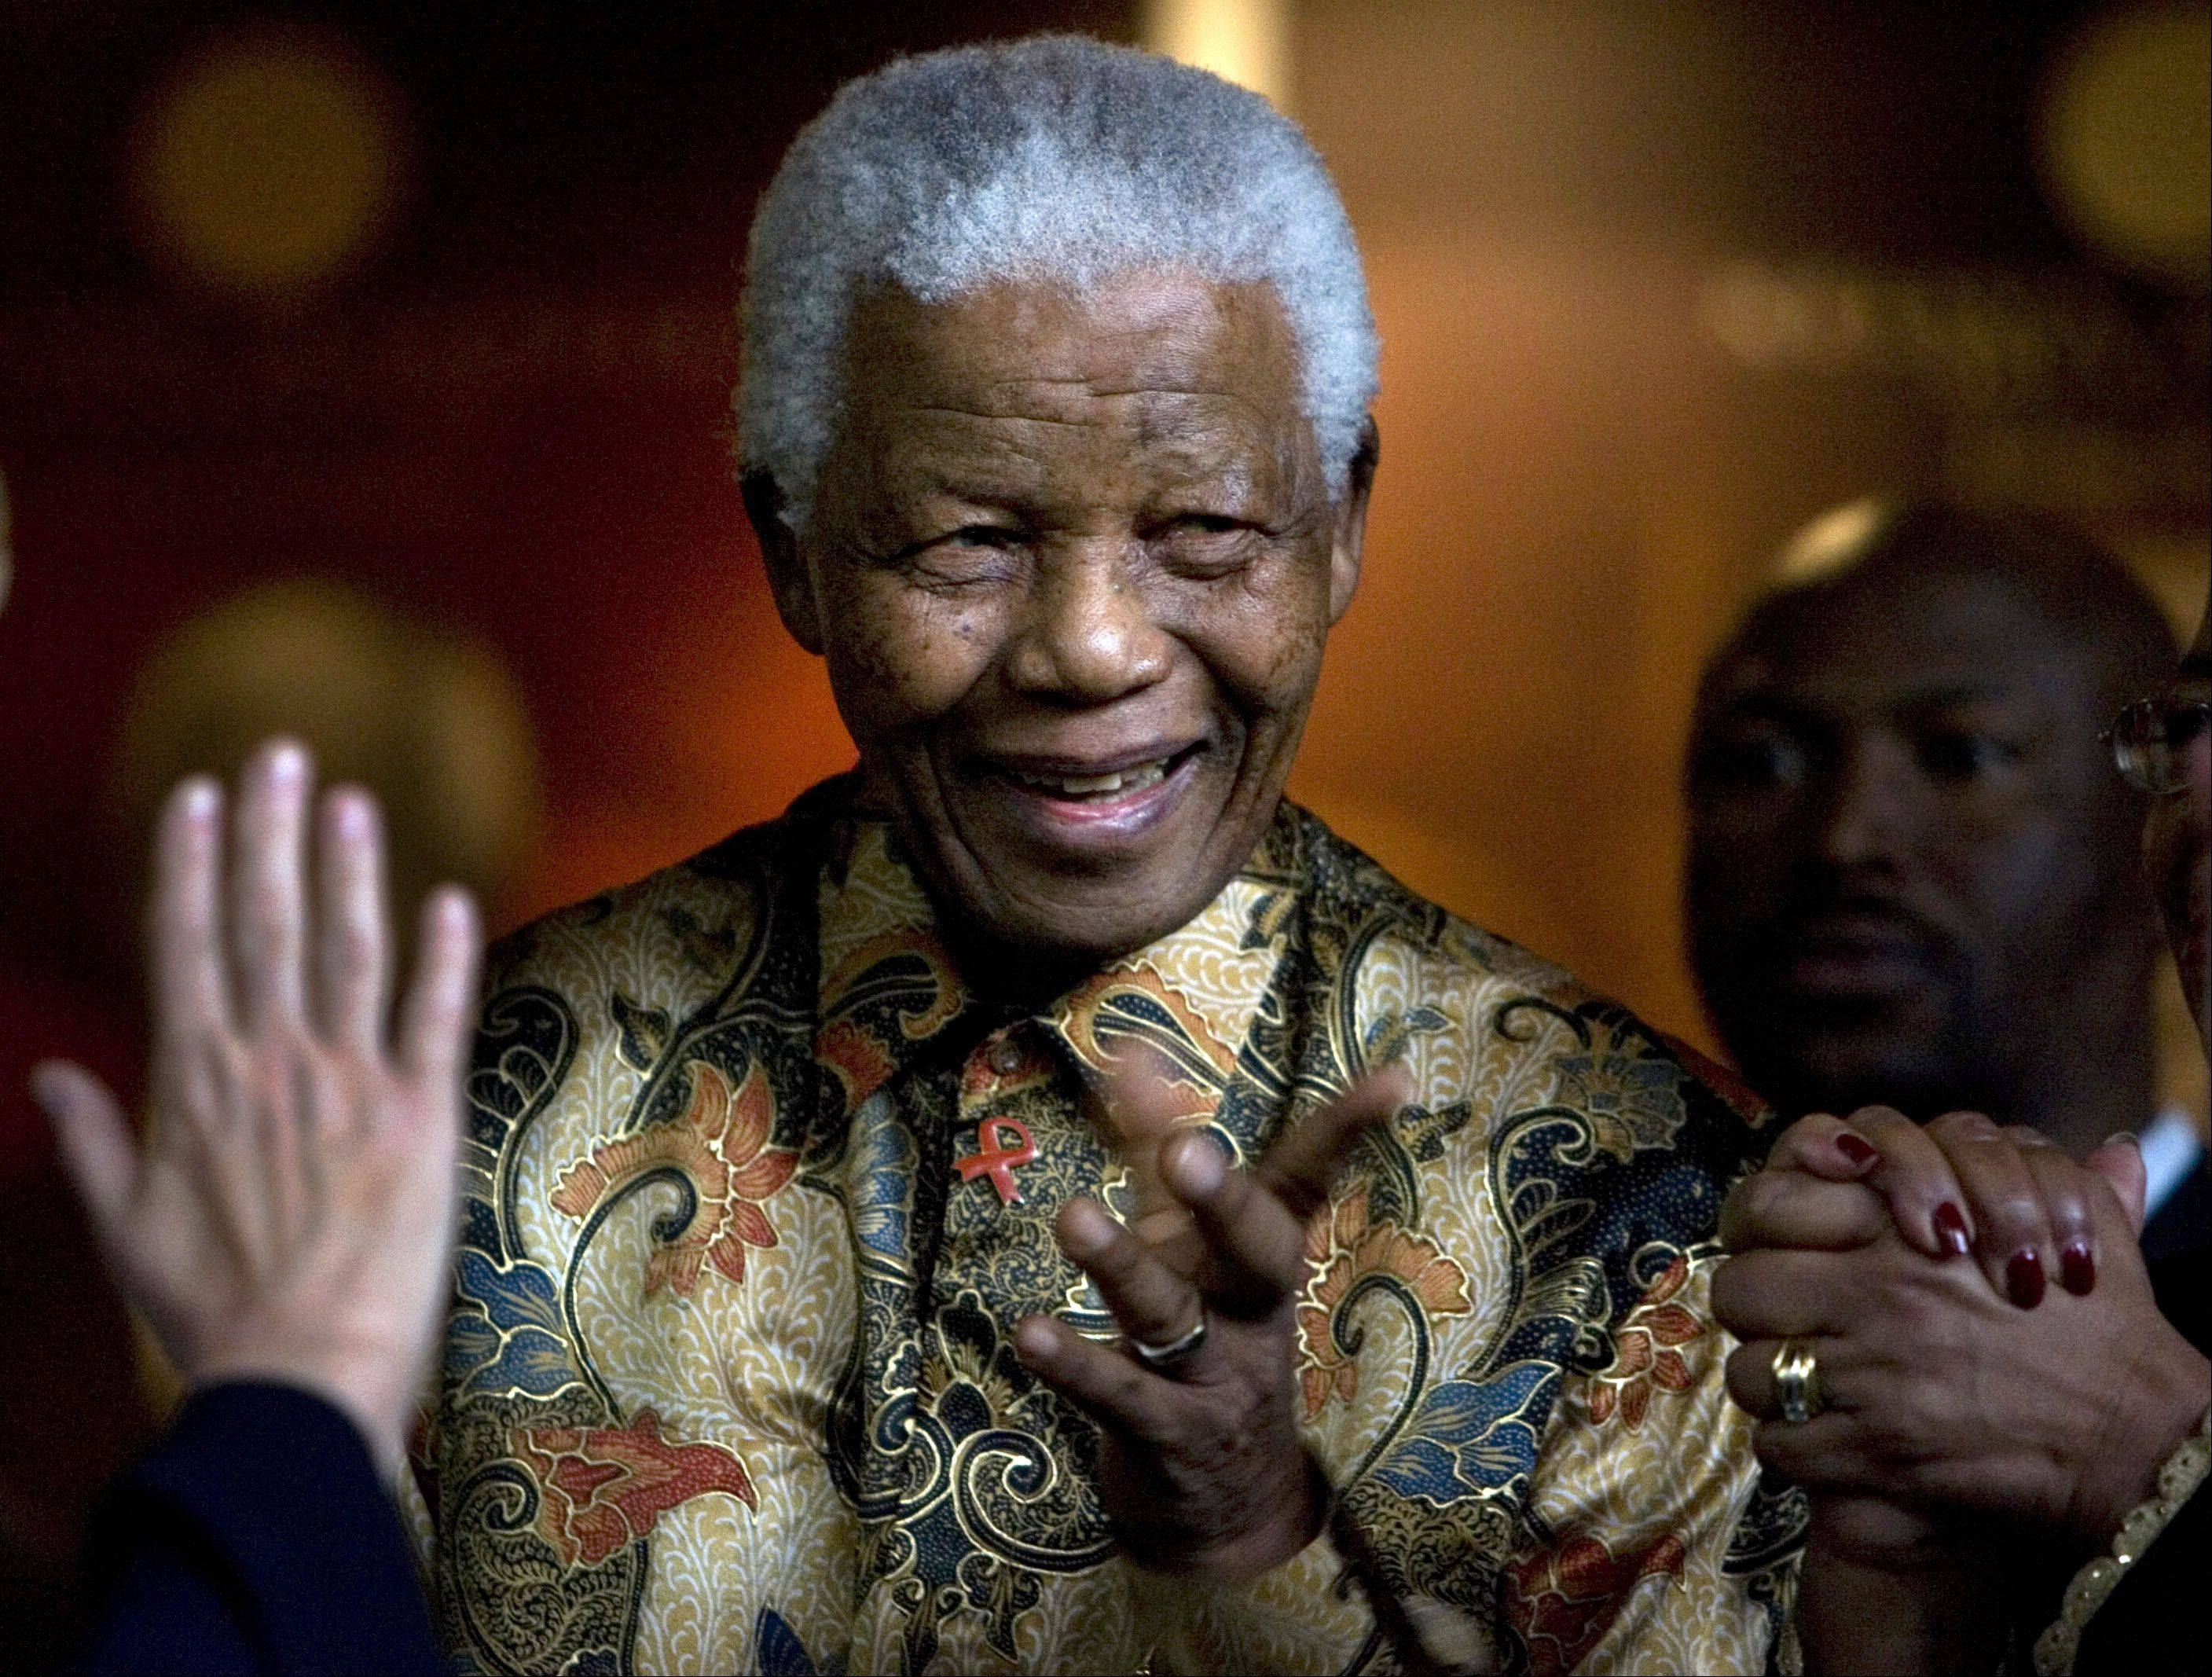 In this Oct. 6, 2007 file photo, former South African President Nelson Mandela reacts as German Chancellor Angela Merkel, left, waves farewell after a meeting at the Nelson Mandela Foundation building in Johannesburg, South Africa.